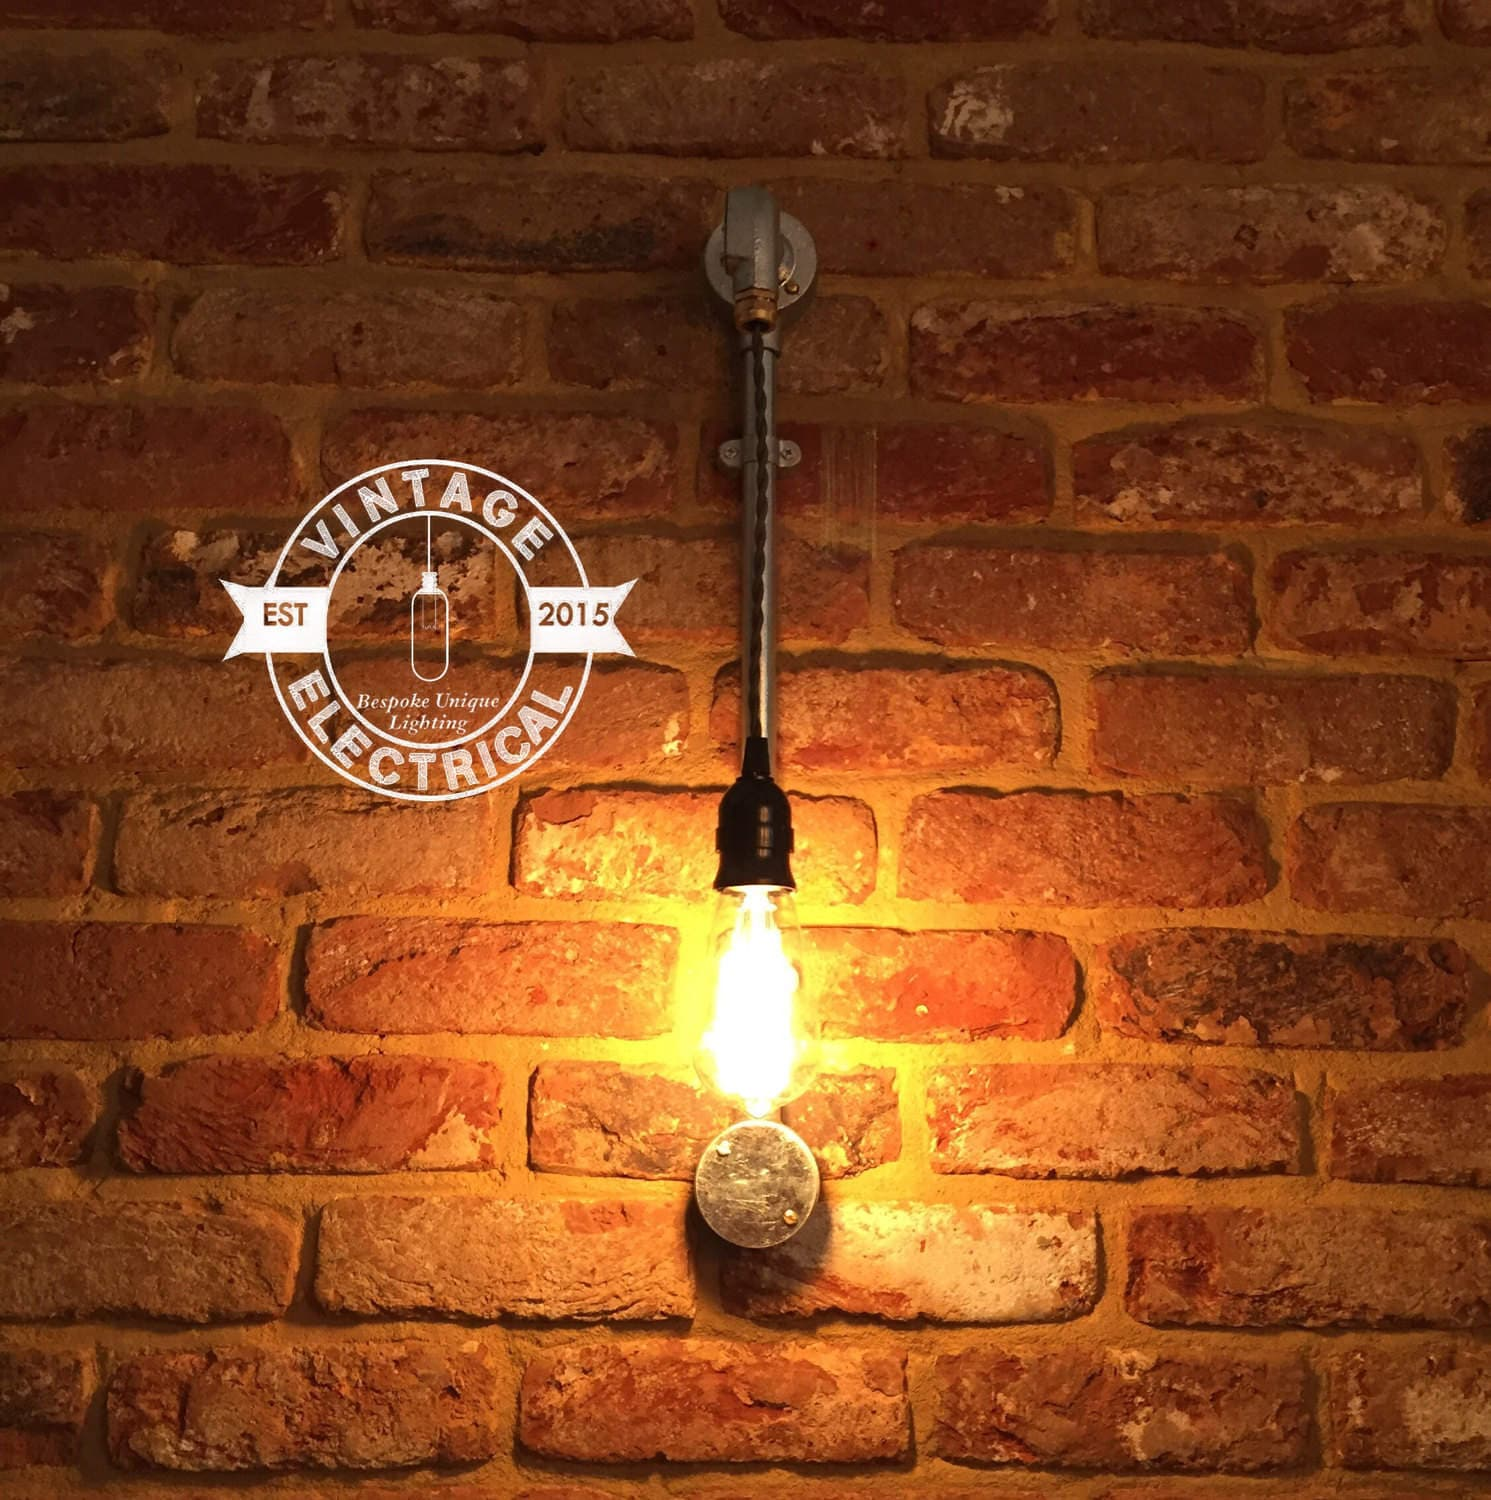 The horsey industrial vintage pendant wall light fitting eddison the horsey industrial vintage pendant wall light fitting eddison filament lamps steampunk bar pub shop boutique home cafe aloadofball Gallery